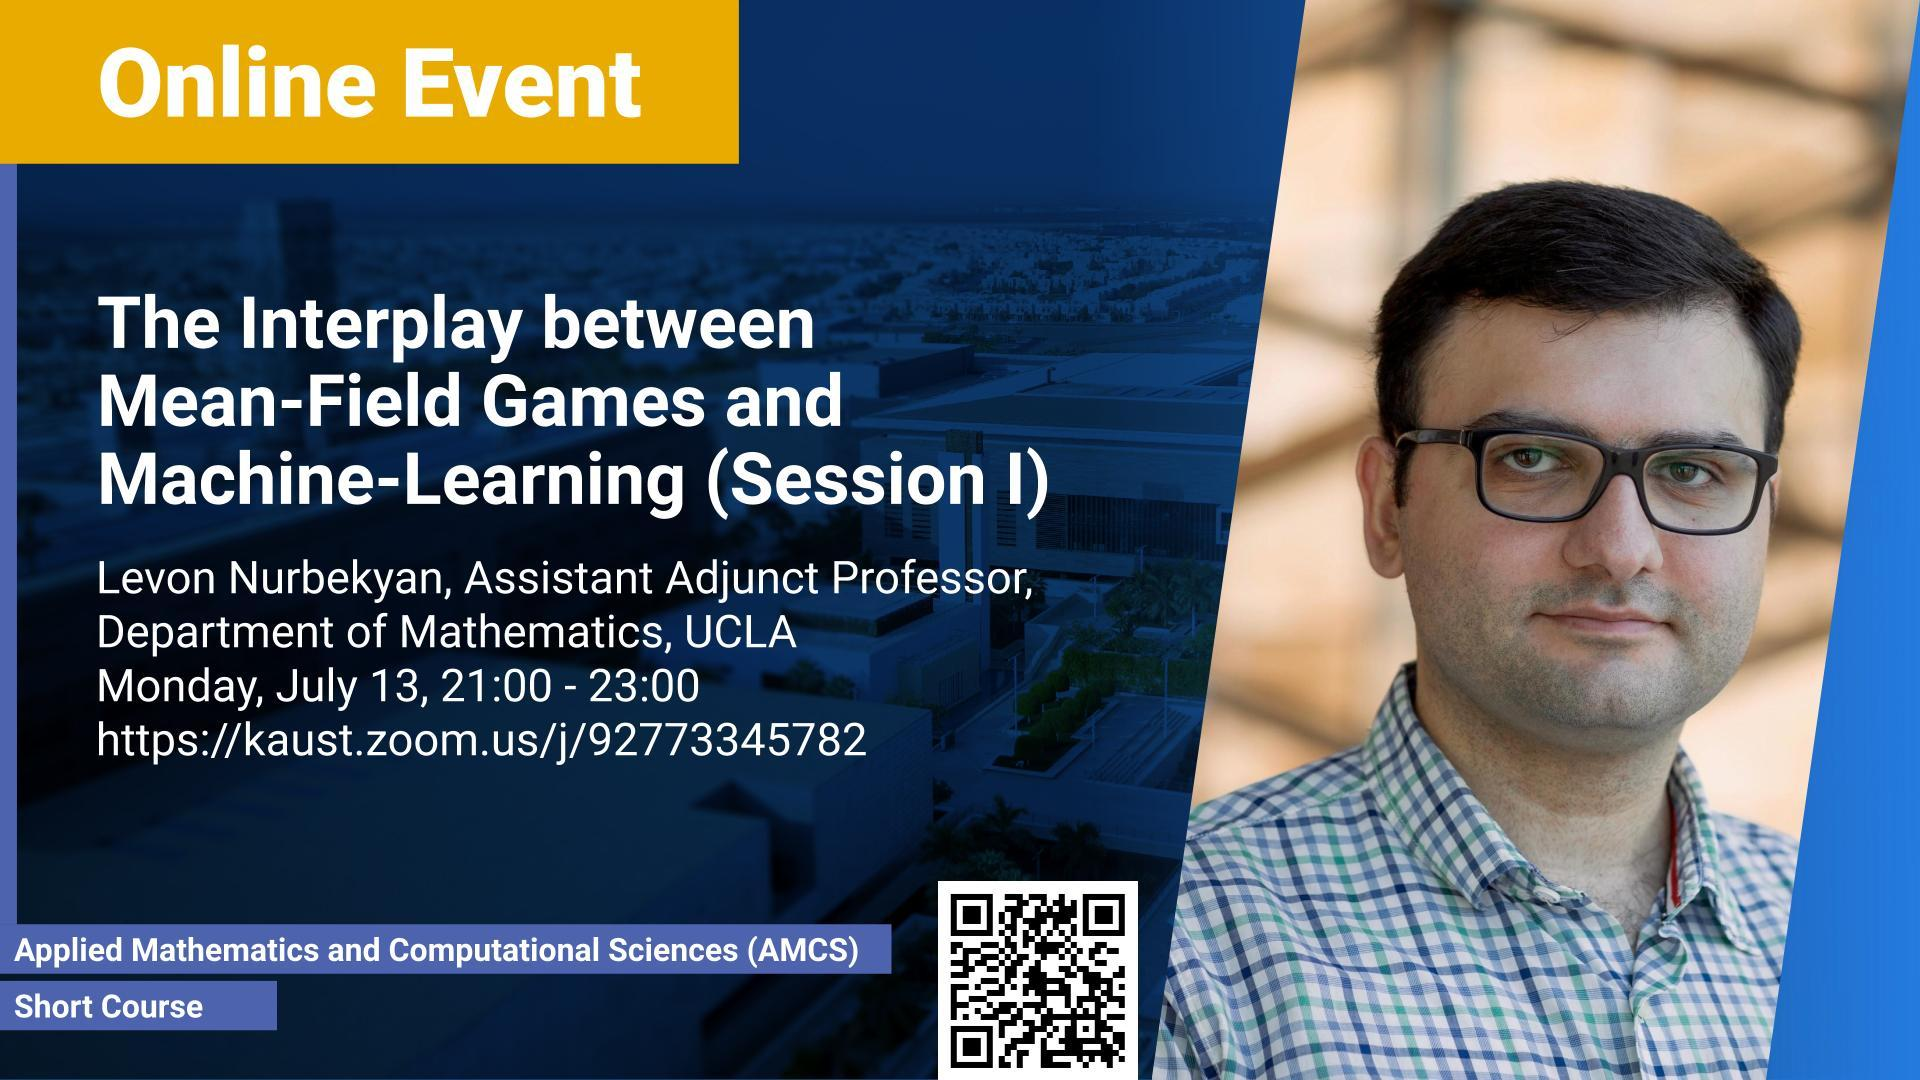 KAUST CEMSE AMCS Short Course Levon Nurbekyan The Interplay between Mean Field Games and Machine Learning (Session I)